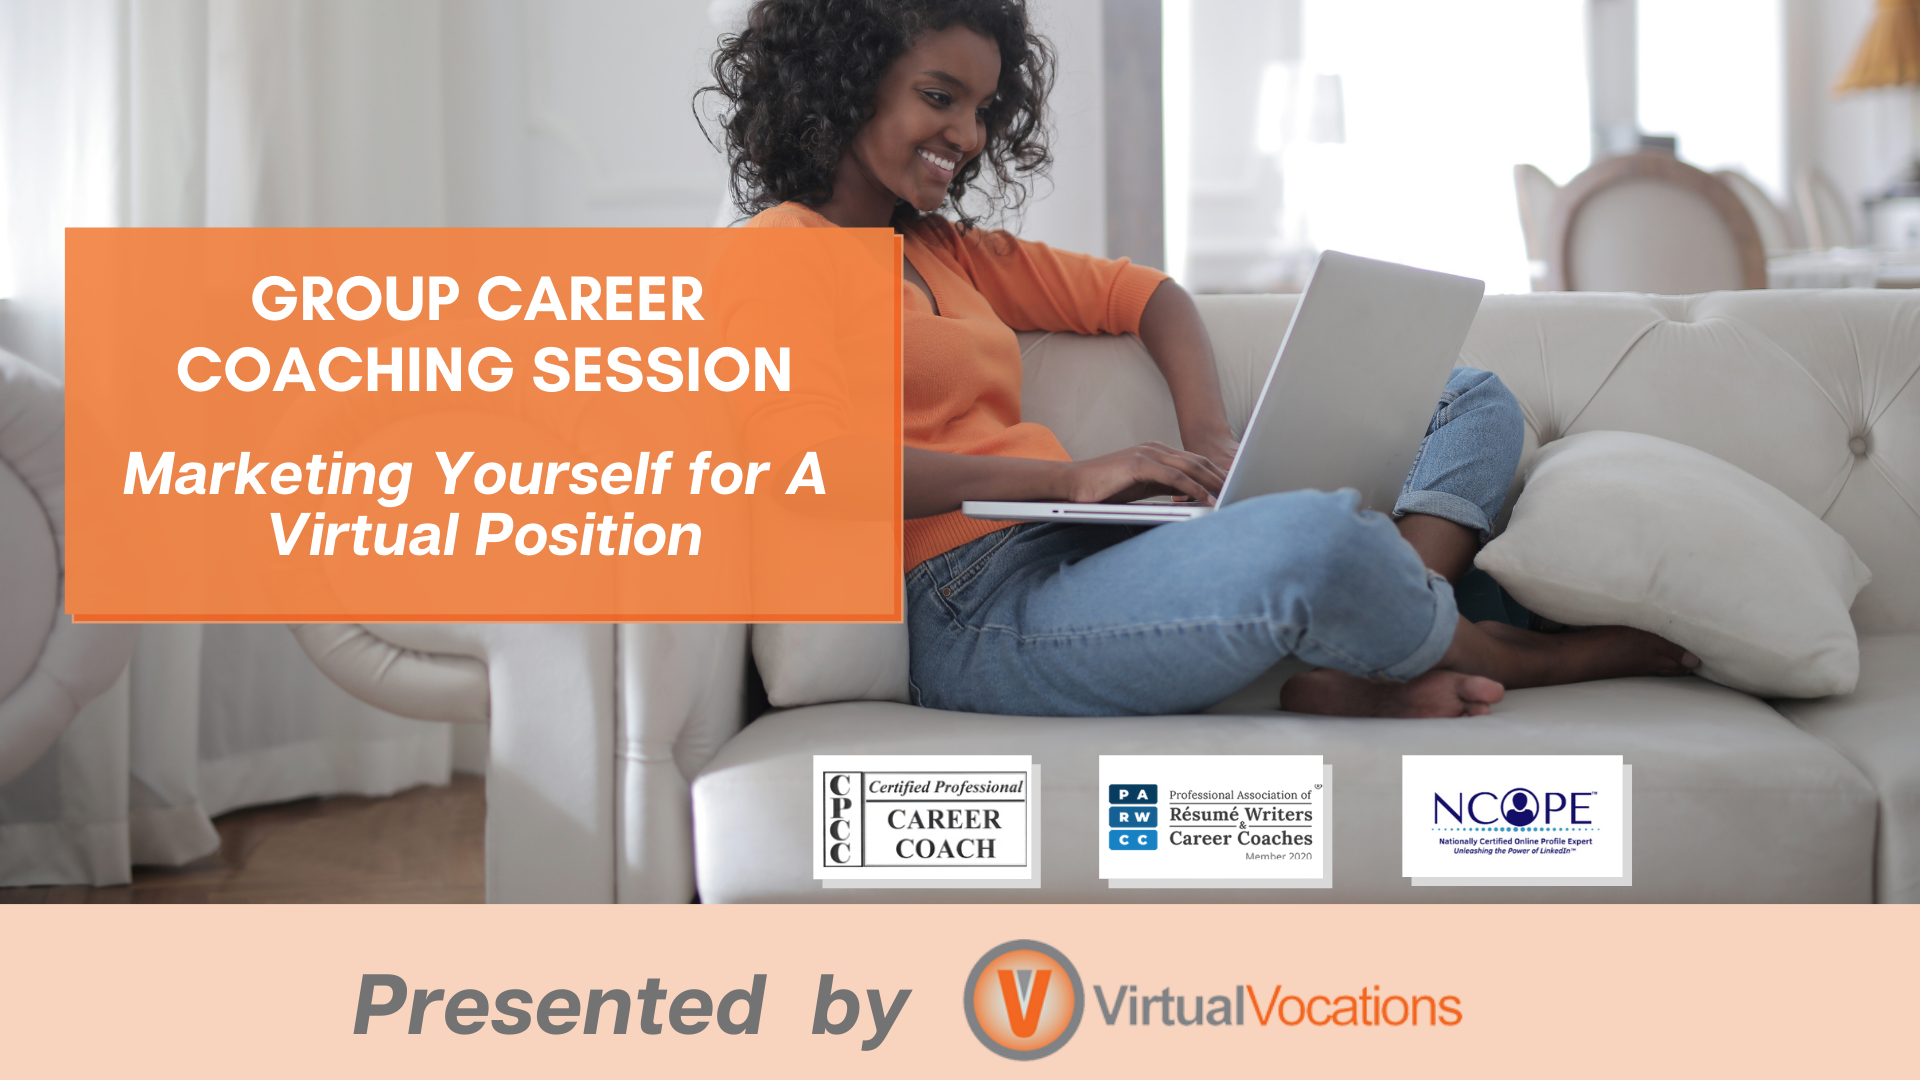 Marketing Yourself for A Virtual Position